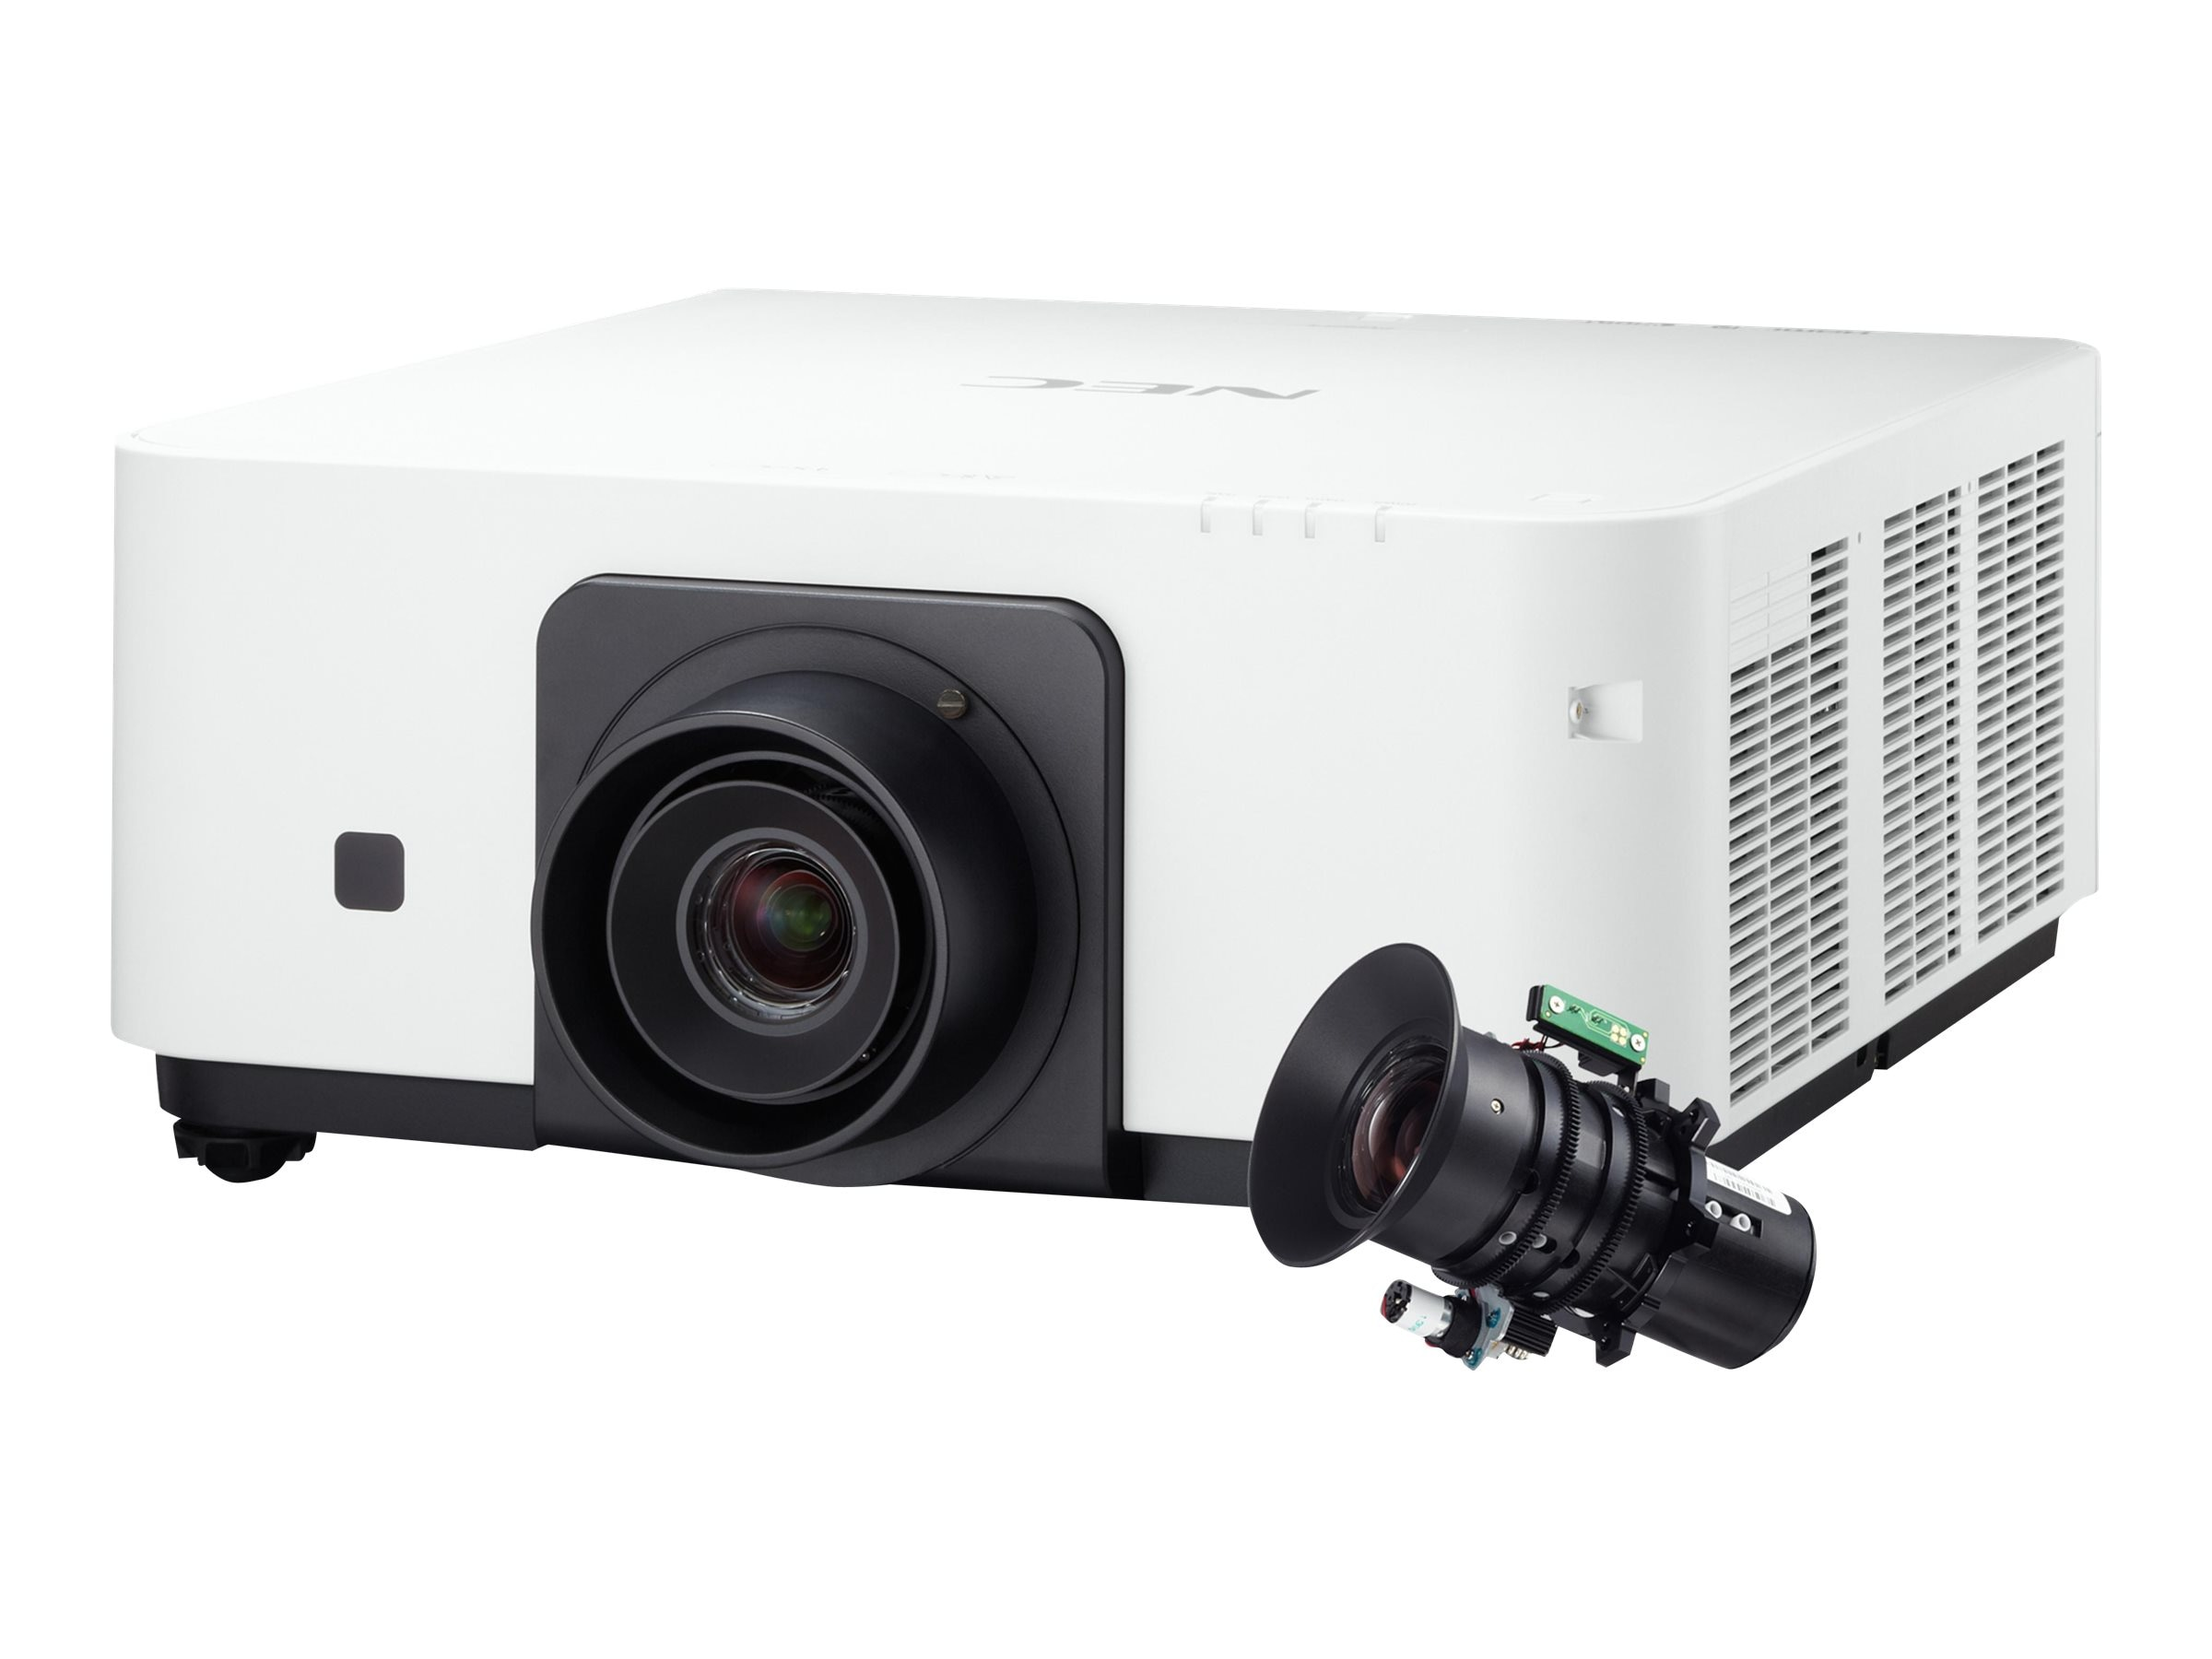 NEC PX602WL WXGA DLP Projector, 6000 Lumens, White with Zoom Lens, NP-PX602WL-W-36, 18111614, Projectors